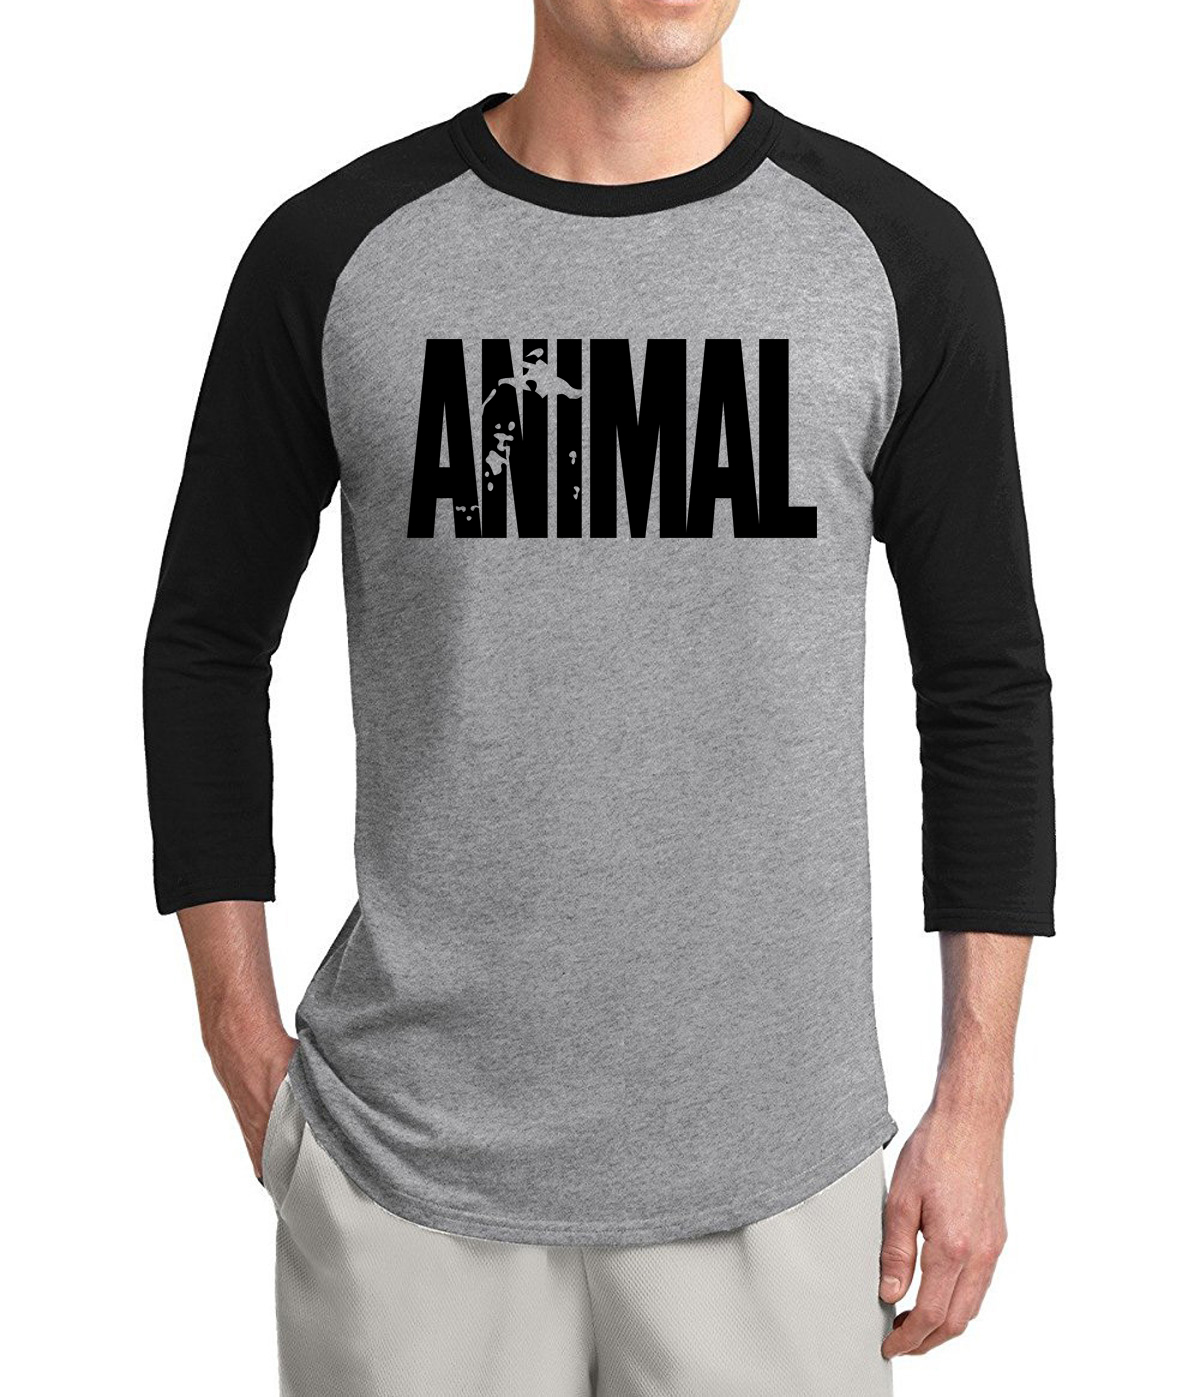 cf89e89c Fitness T Shirts Men Animal Printed 2019 Spring Summer 3/4 Sleeve Shirt  Cotton Crossfit Hip Hop Streetwear Bodybuilding Clothes-in T-Shirts from  Men's ...